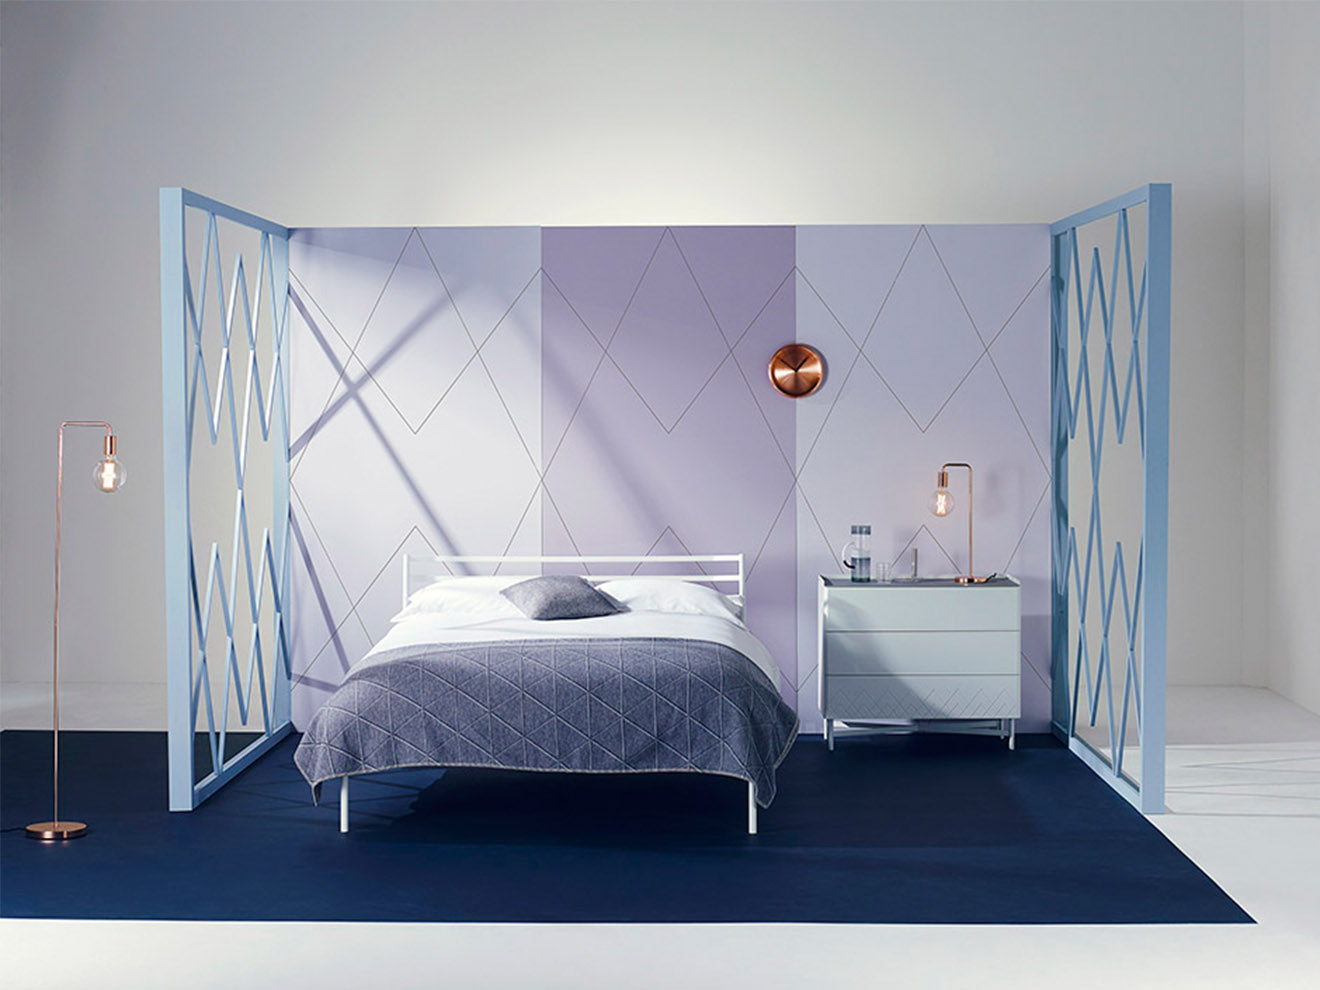 Heal's Dodie bedroom design with modern art deco detailing